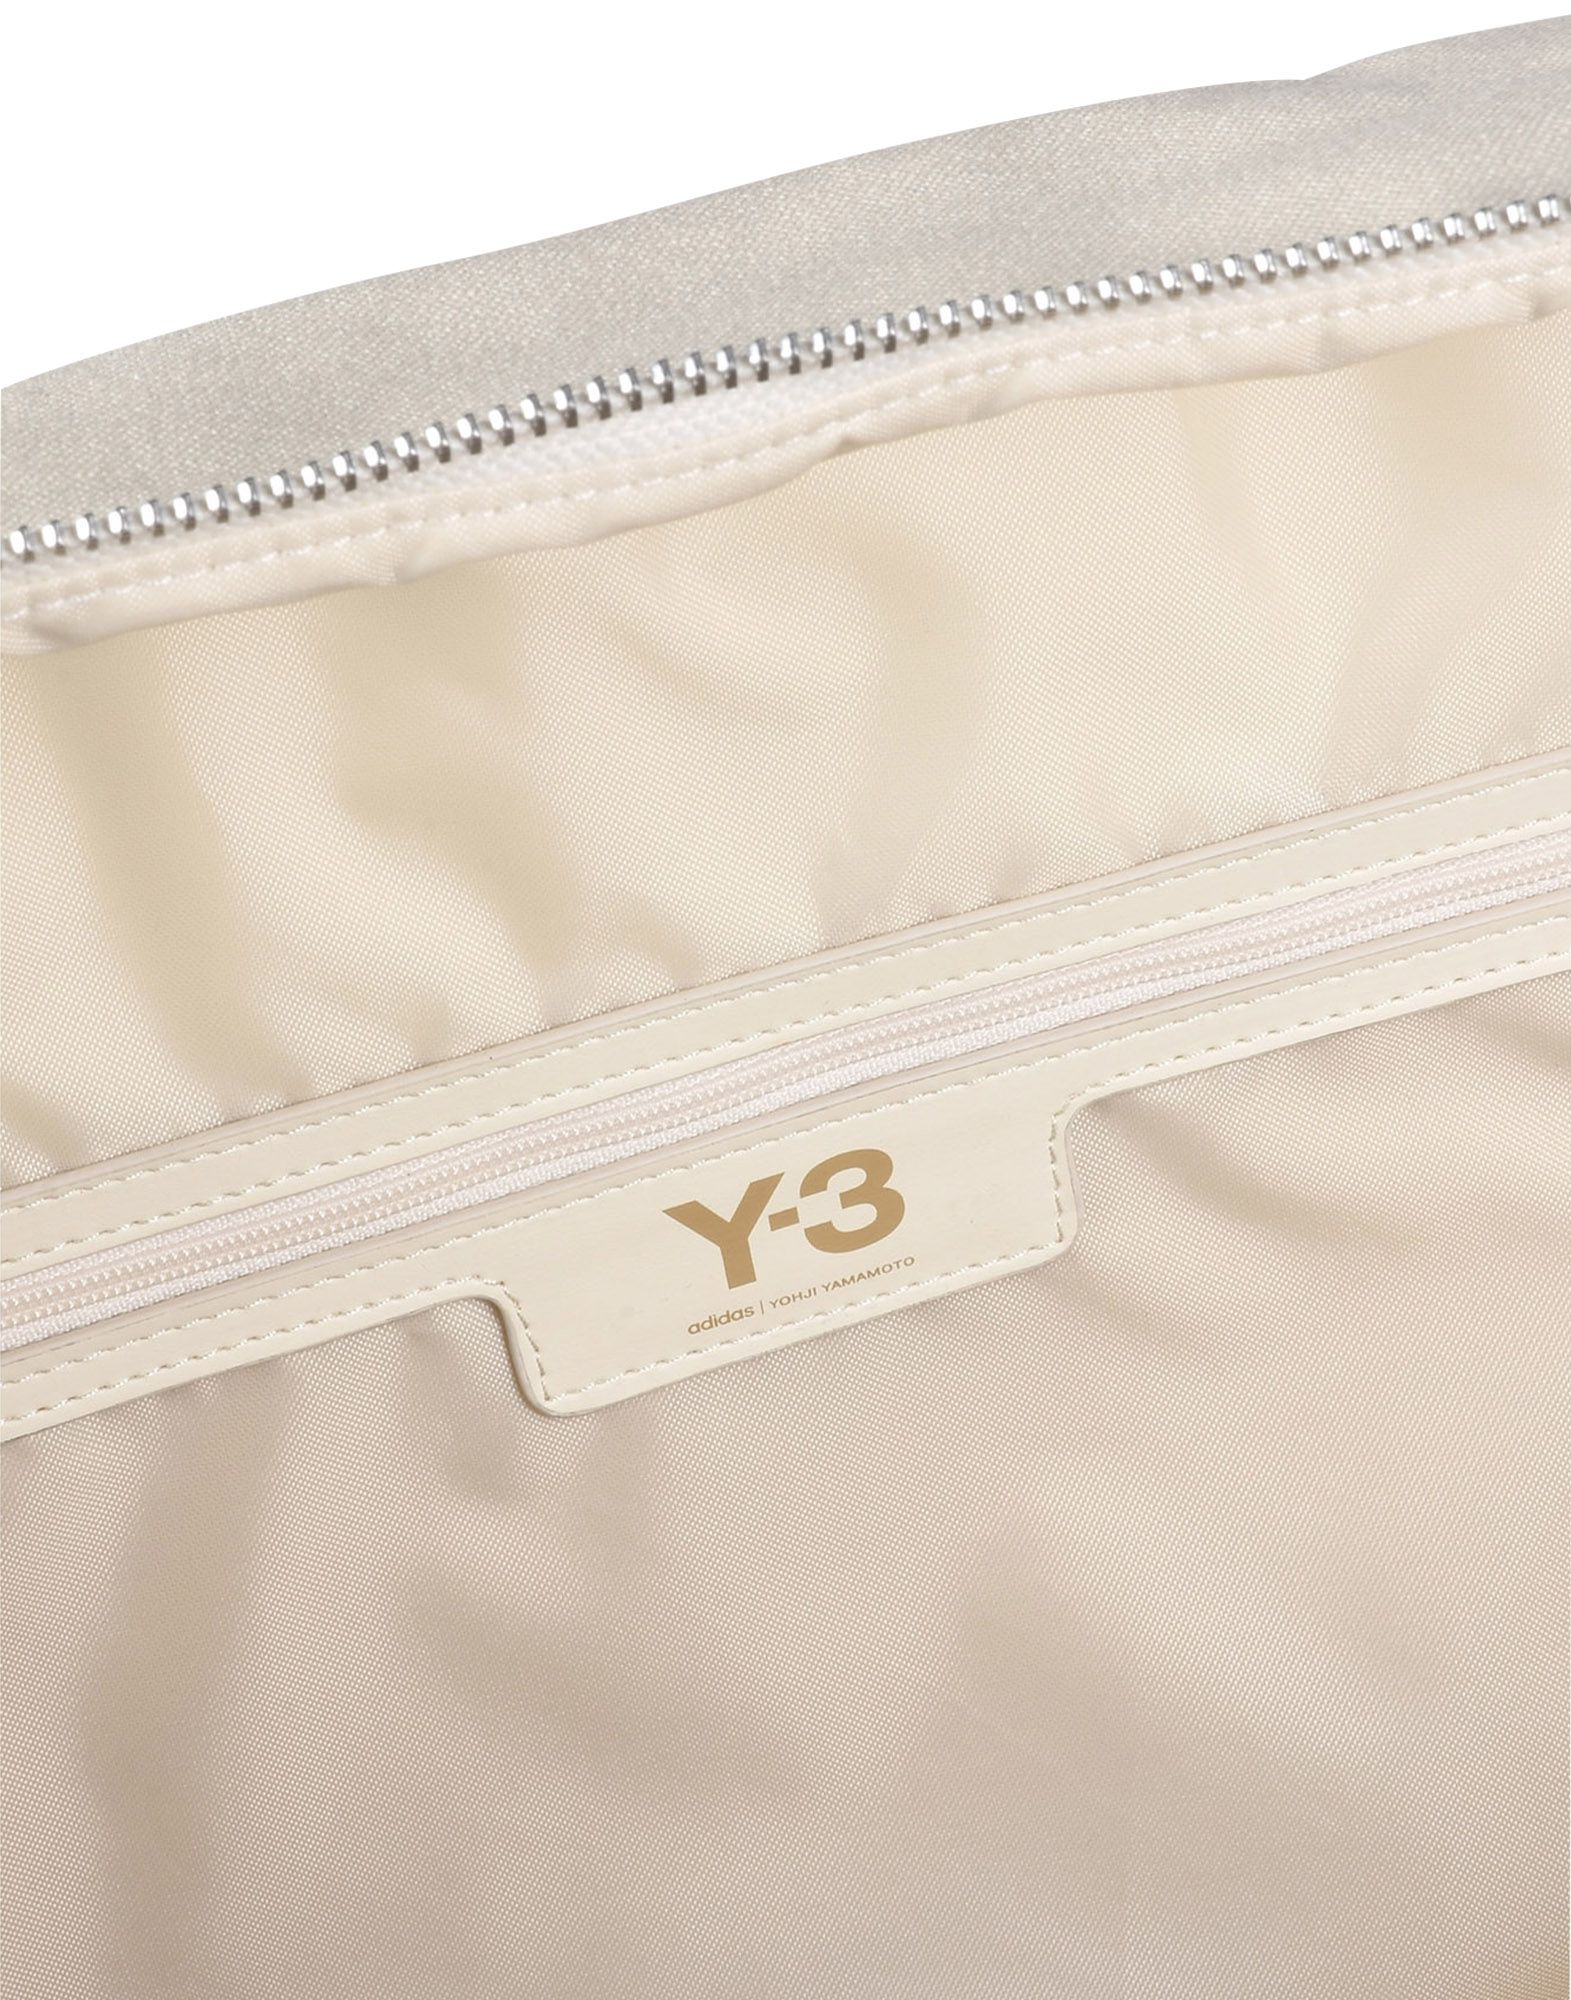 Y-3 Y-3 WEEKENDER BAG Travel bags E a